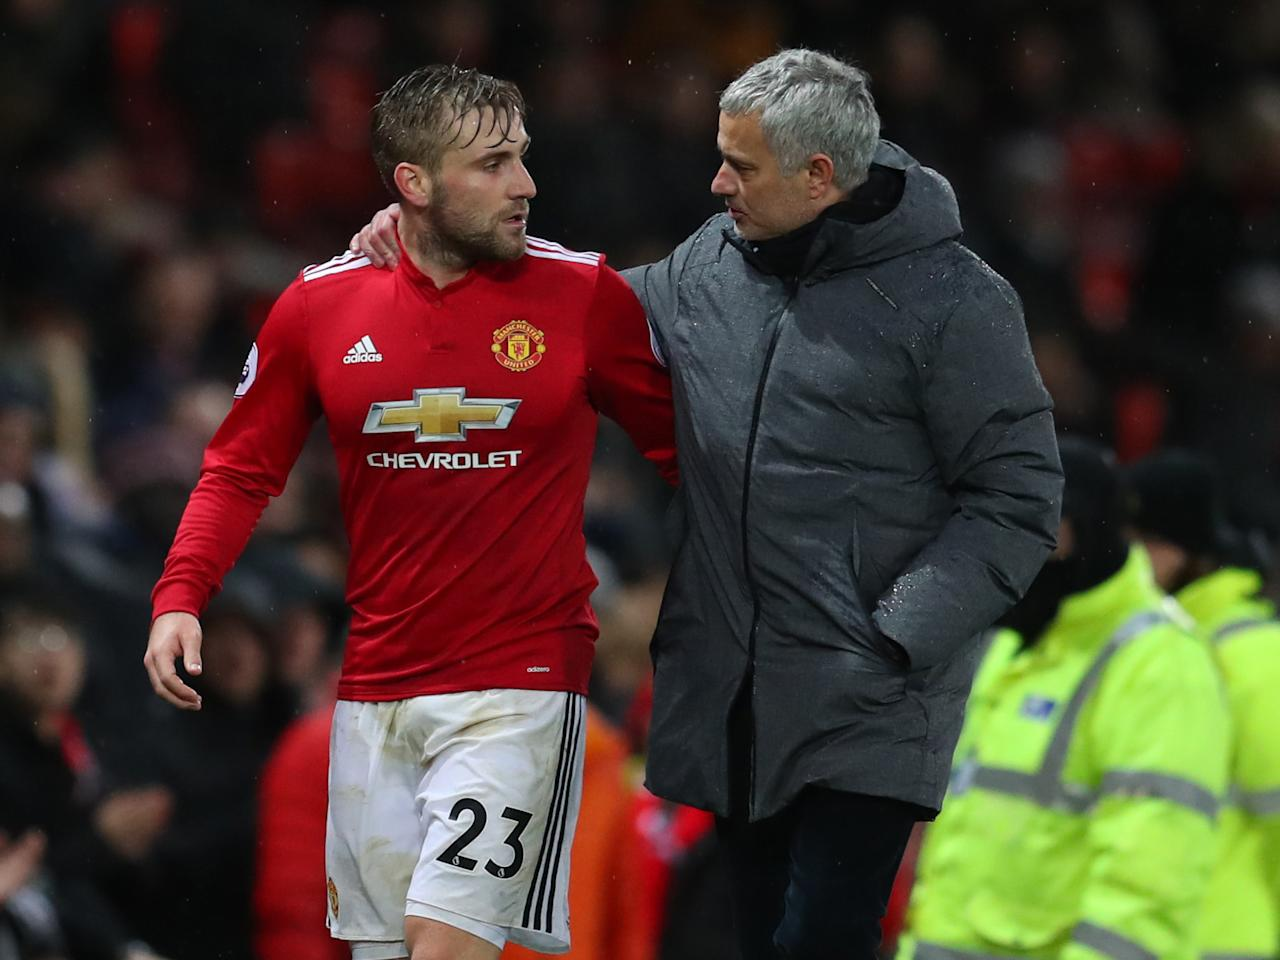 Jose Mourinho heaps praise on Luke Shaw amidst talk of his Manchester United exit